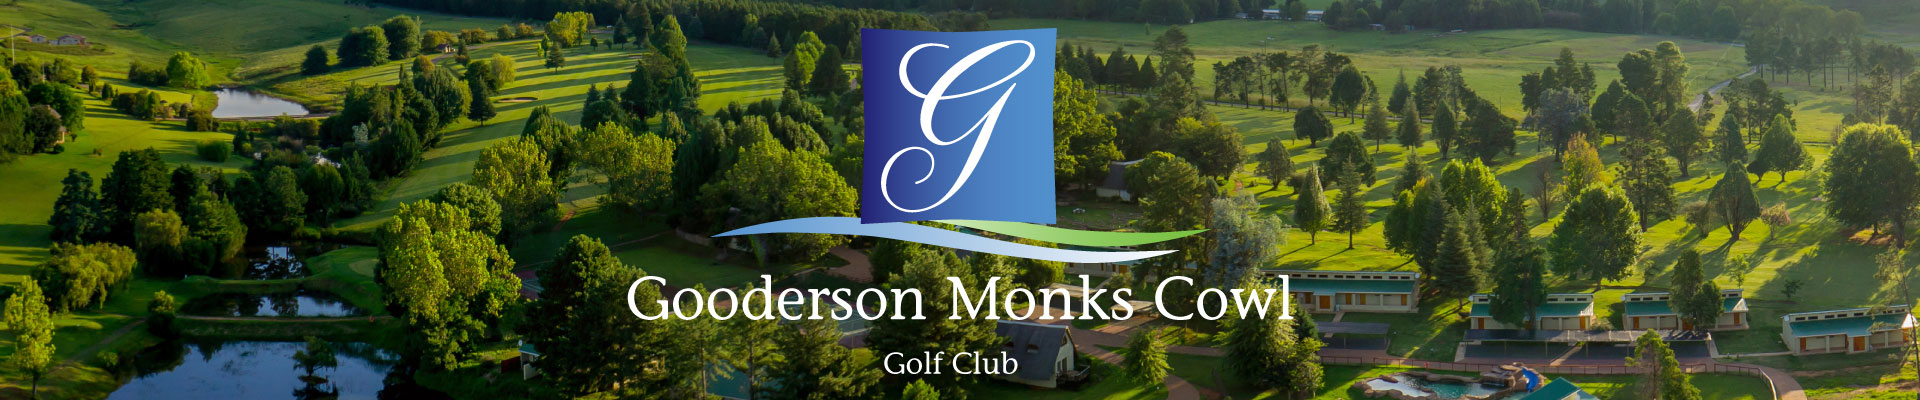 Monks Cowl Golf Club